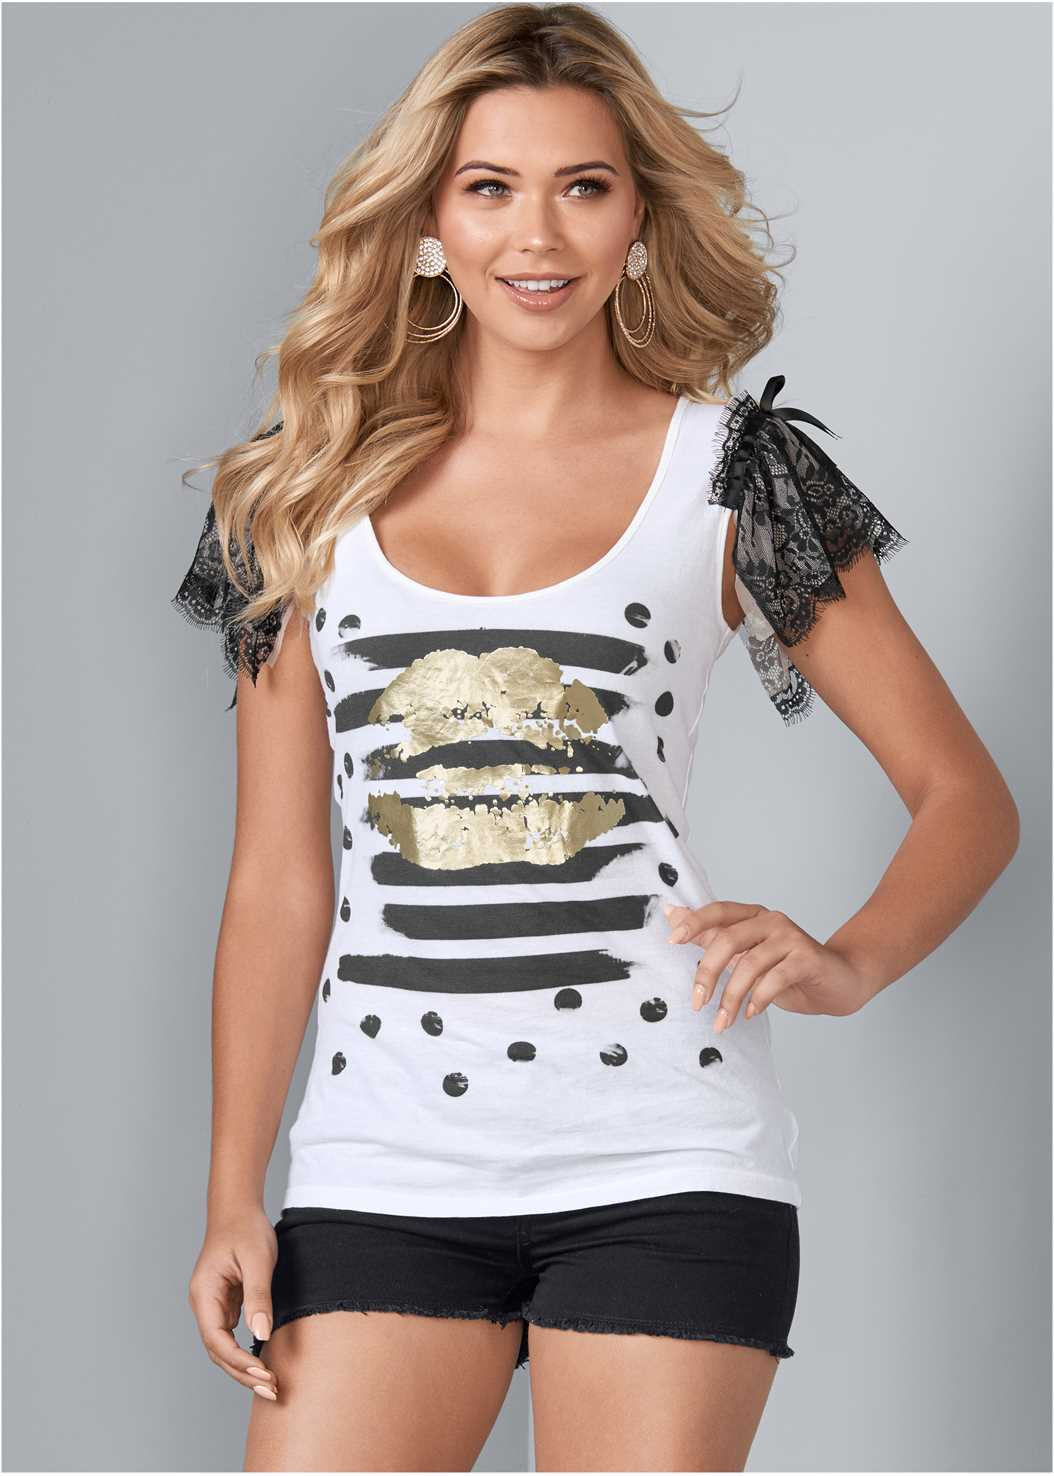 Lace Sleeve Graphic Top,Frayed Cut Off Jean Shorts